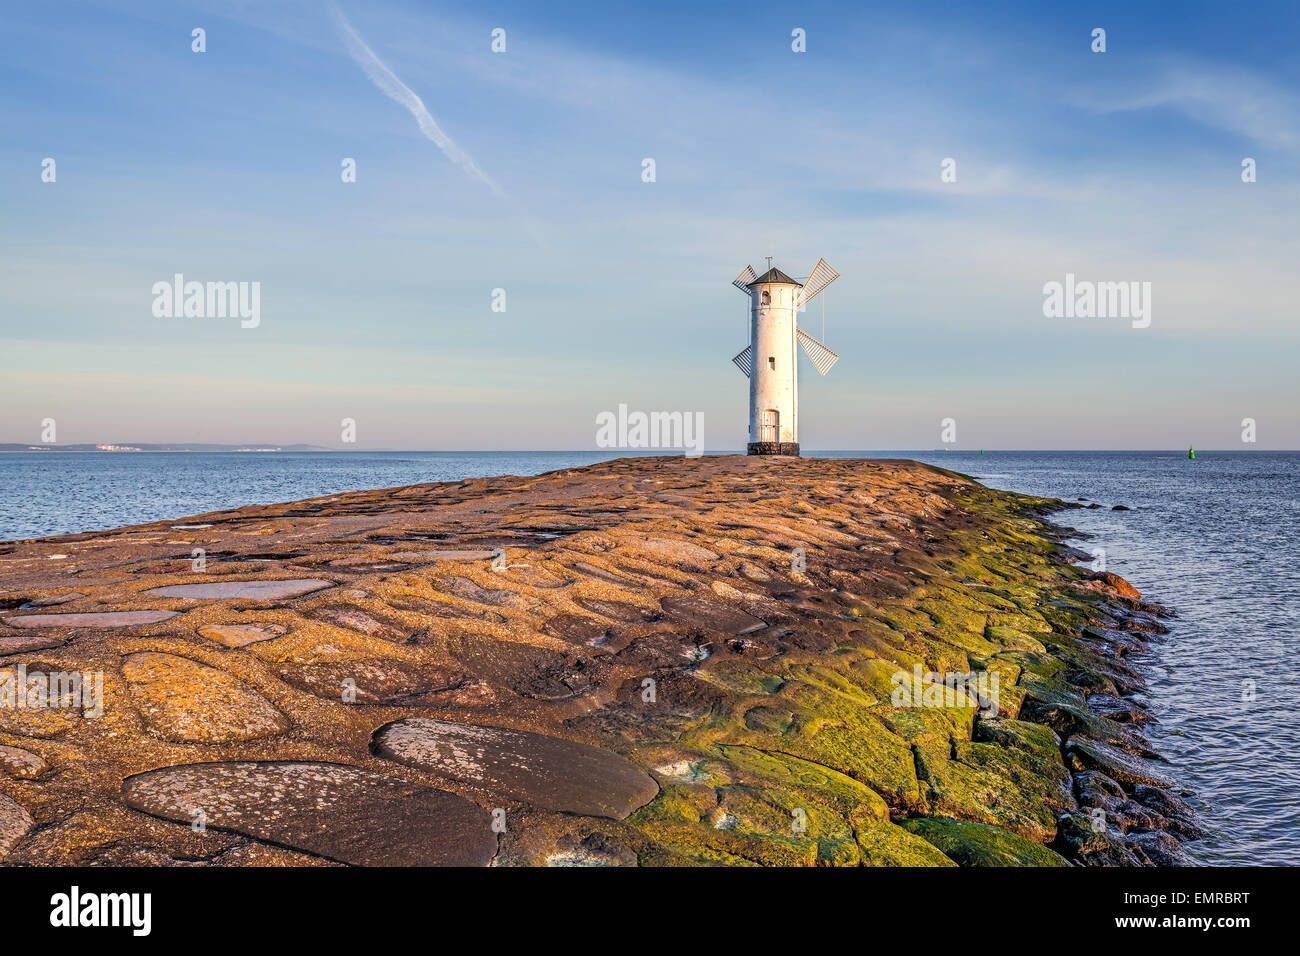 Vivid sunrise over pier and lighthouse in Swinoujscie, Poland. - Stock Image